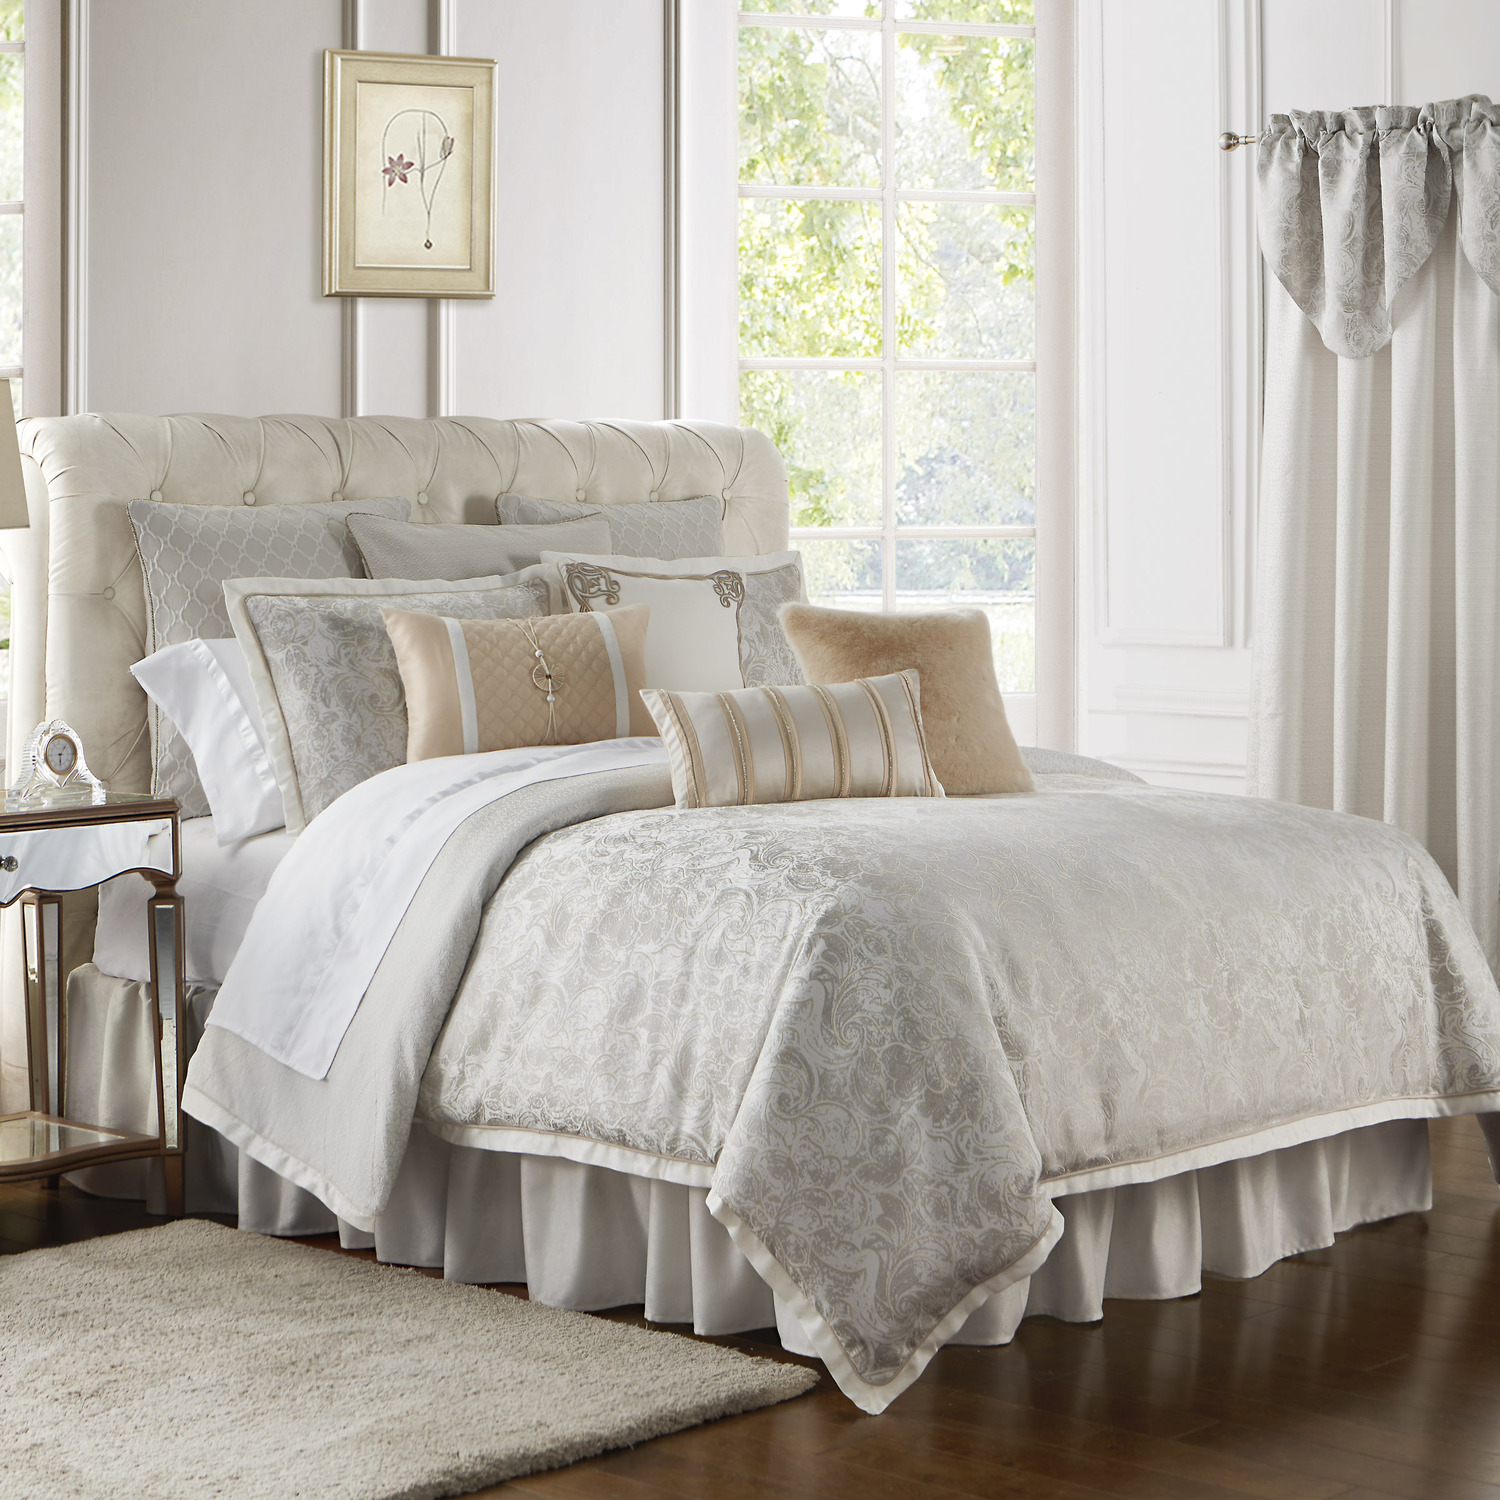 Belissa By Waterford Luxury Bedding Beddingsuperstore Com